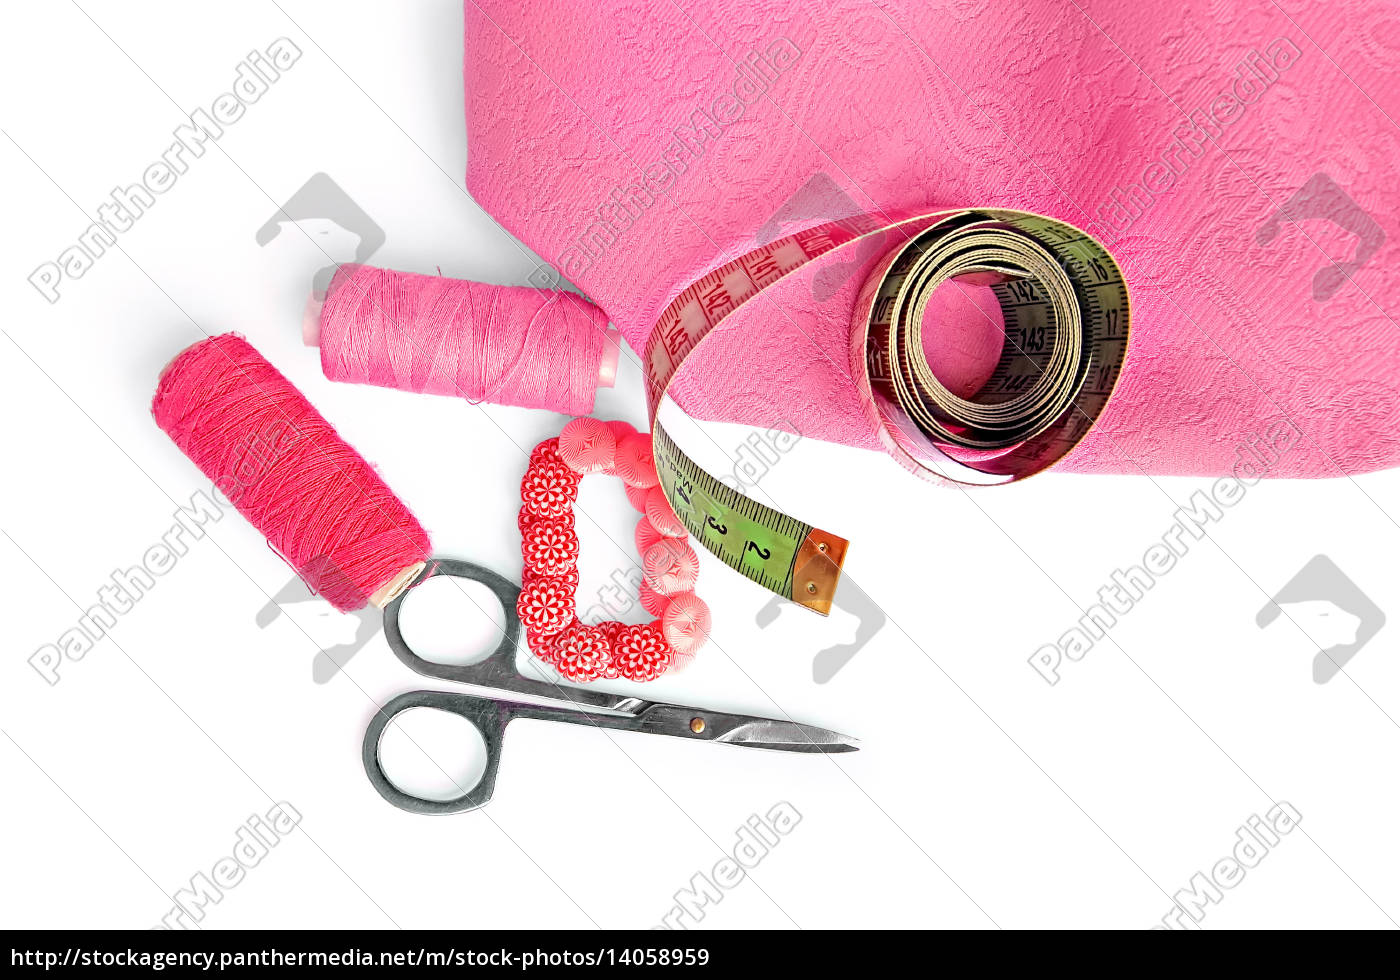 pink, accessories, with, fabric - 14058959